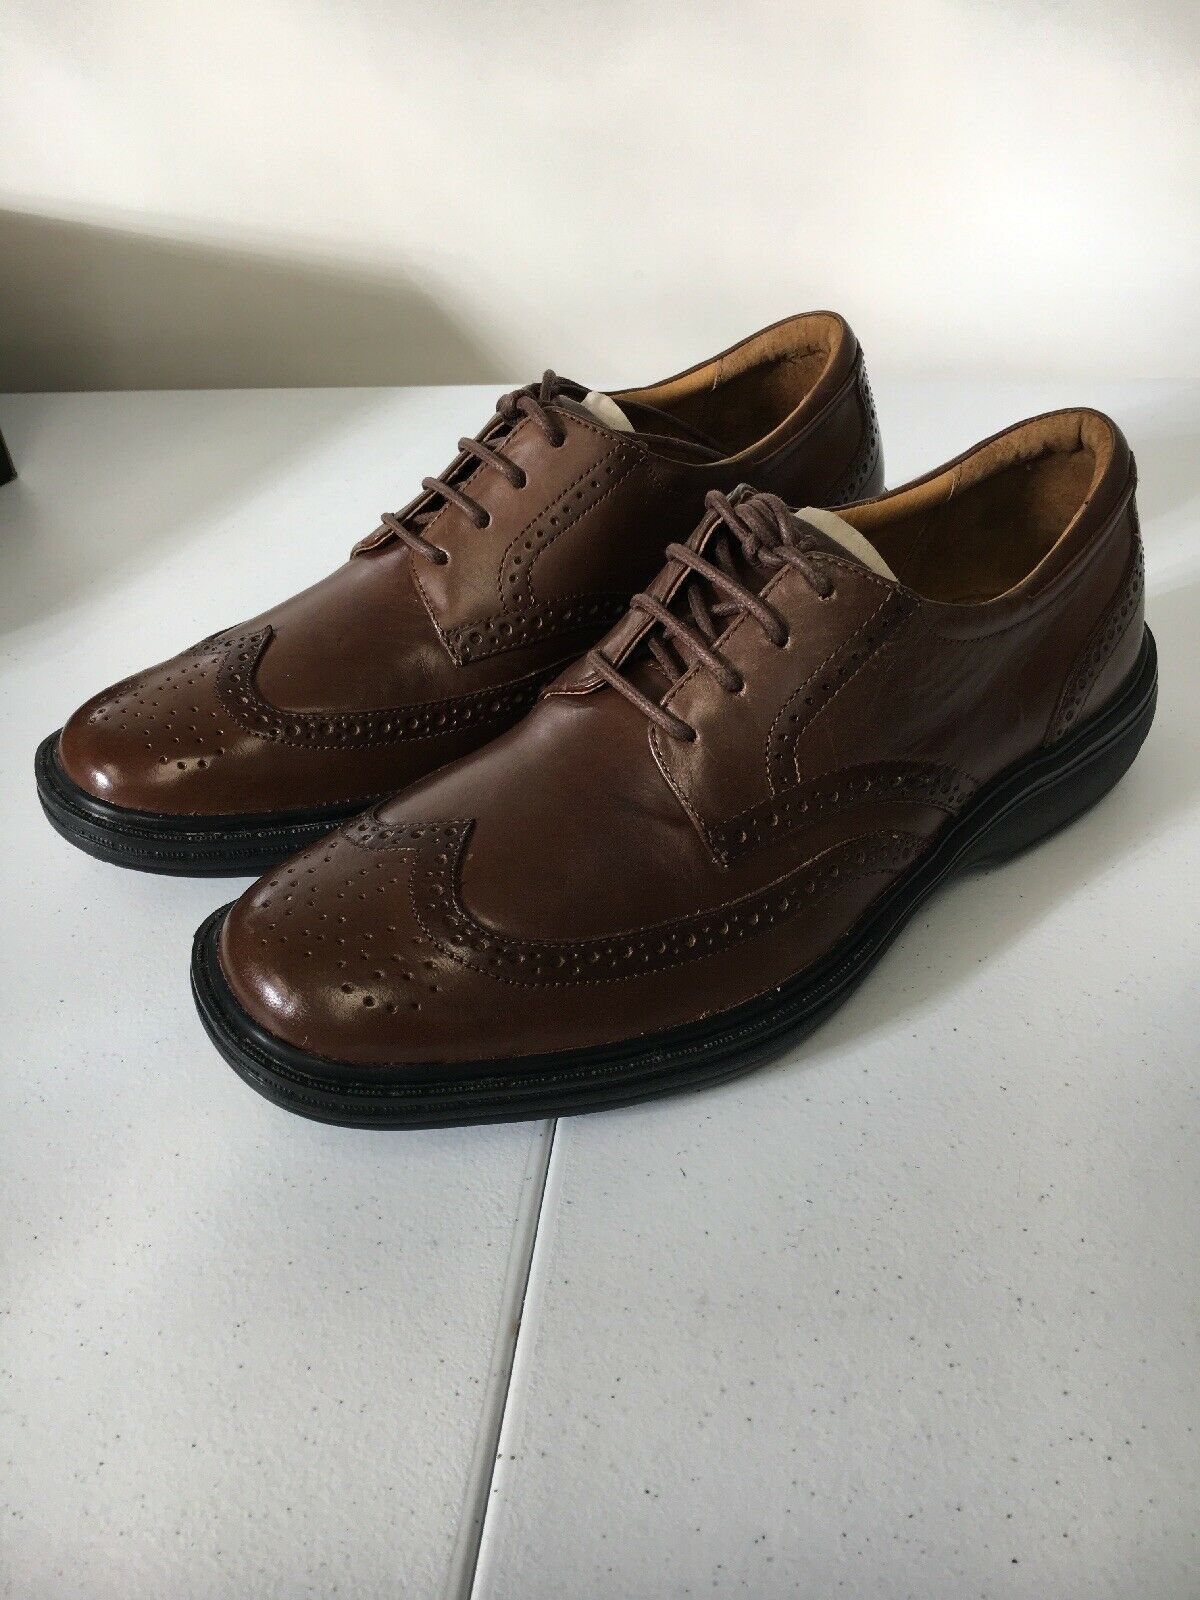 Dr Comfort shoes 6.5 M Mens Chestnut Brown Wing Tip Diabetic Wide 8320 Leather